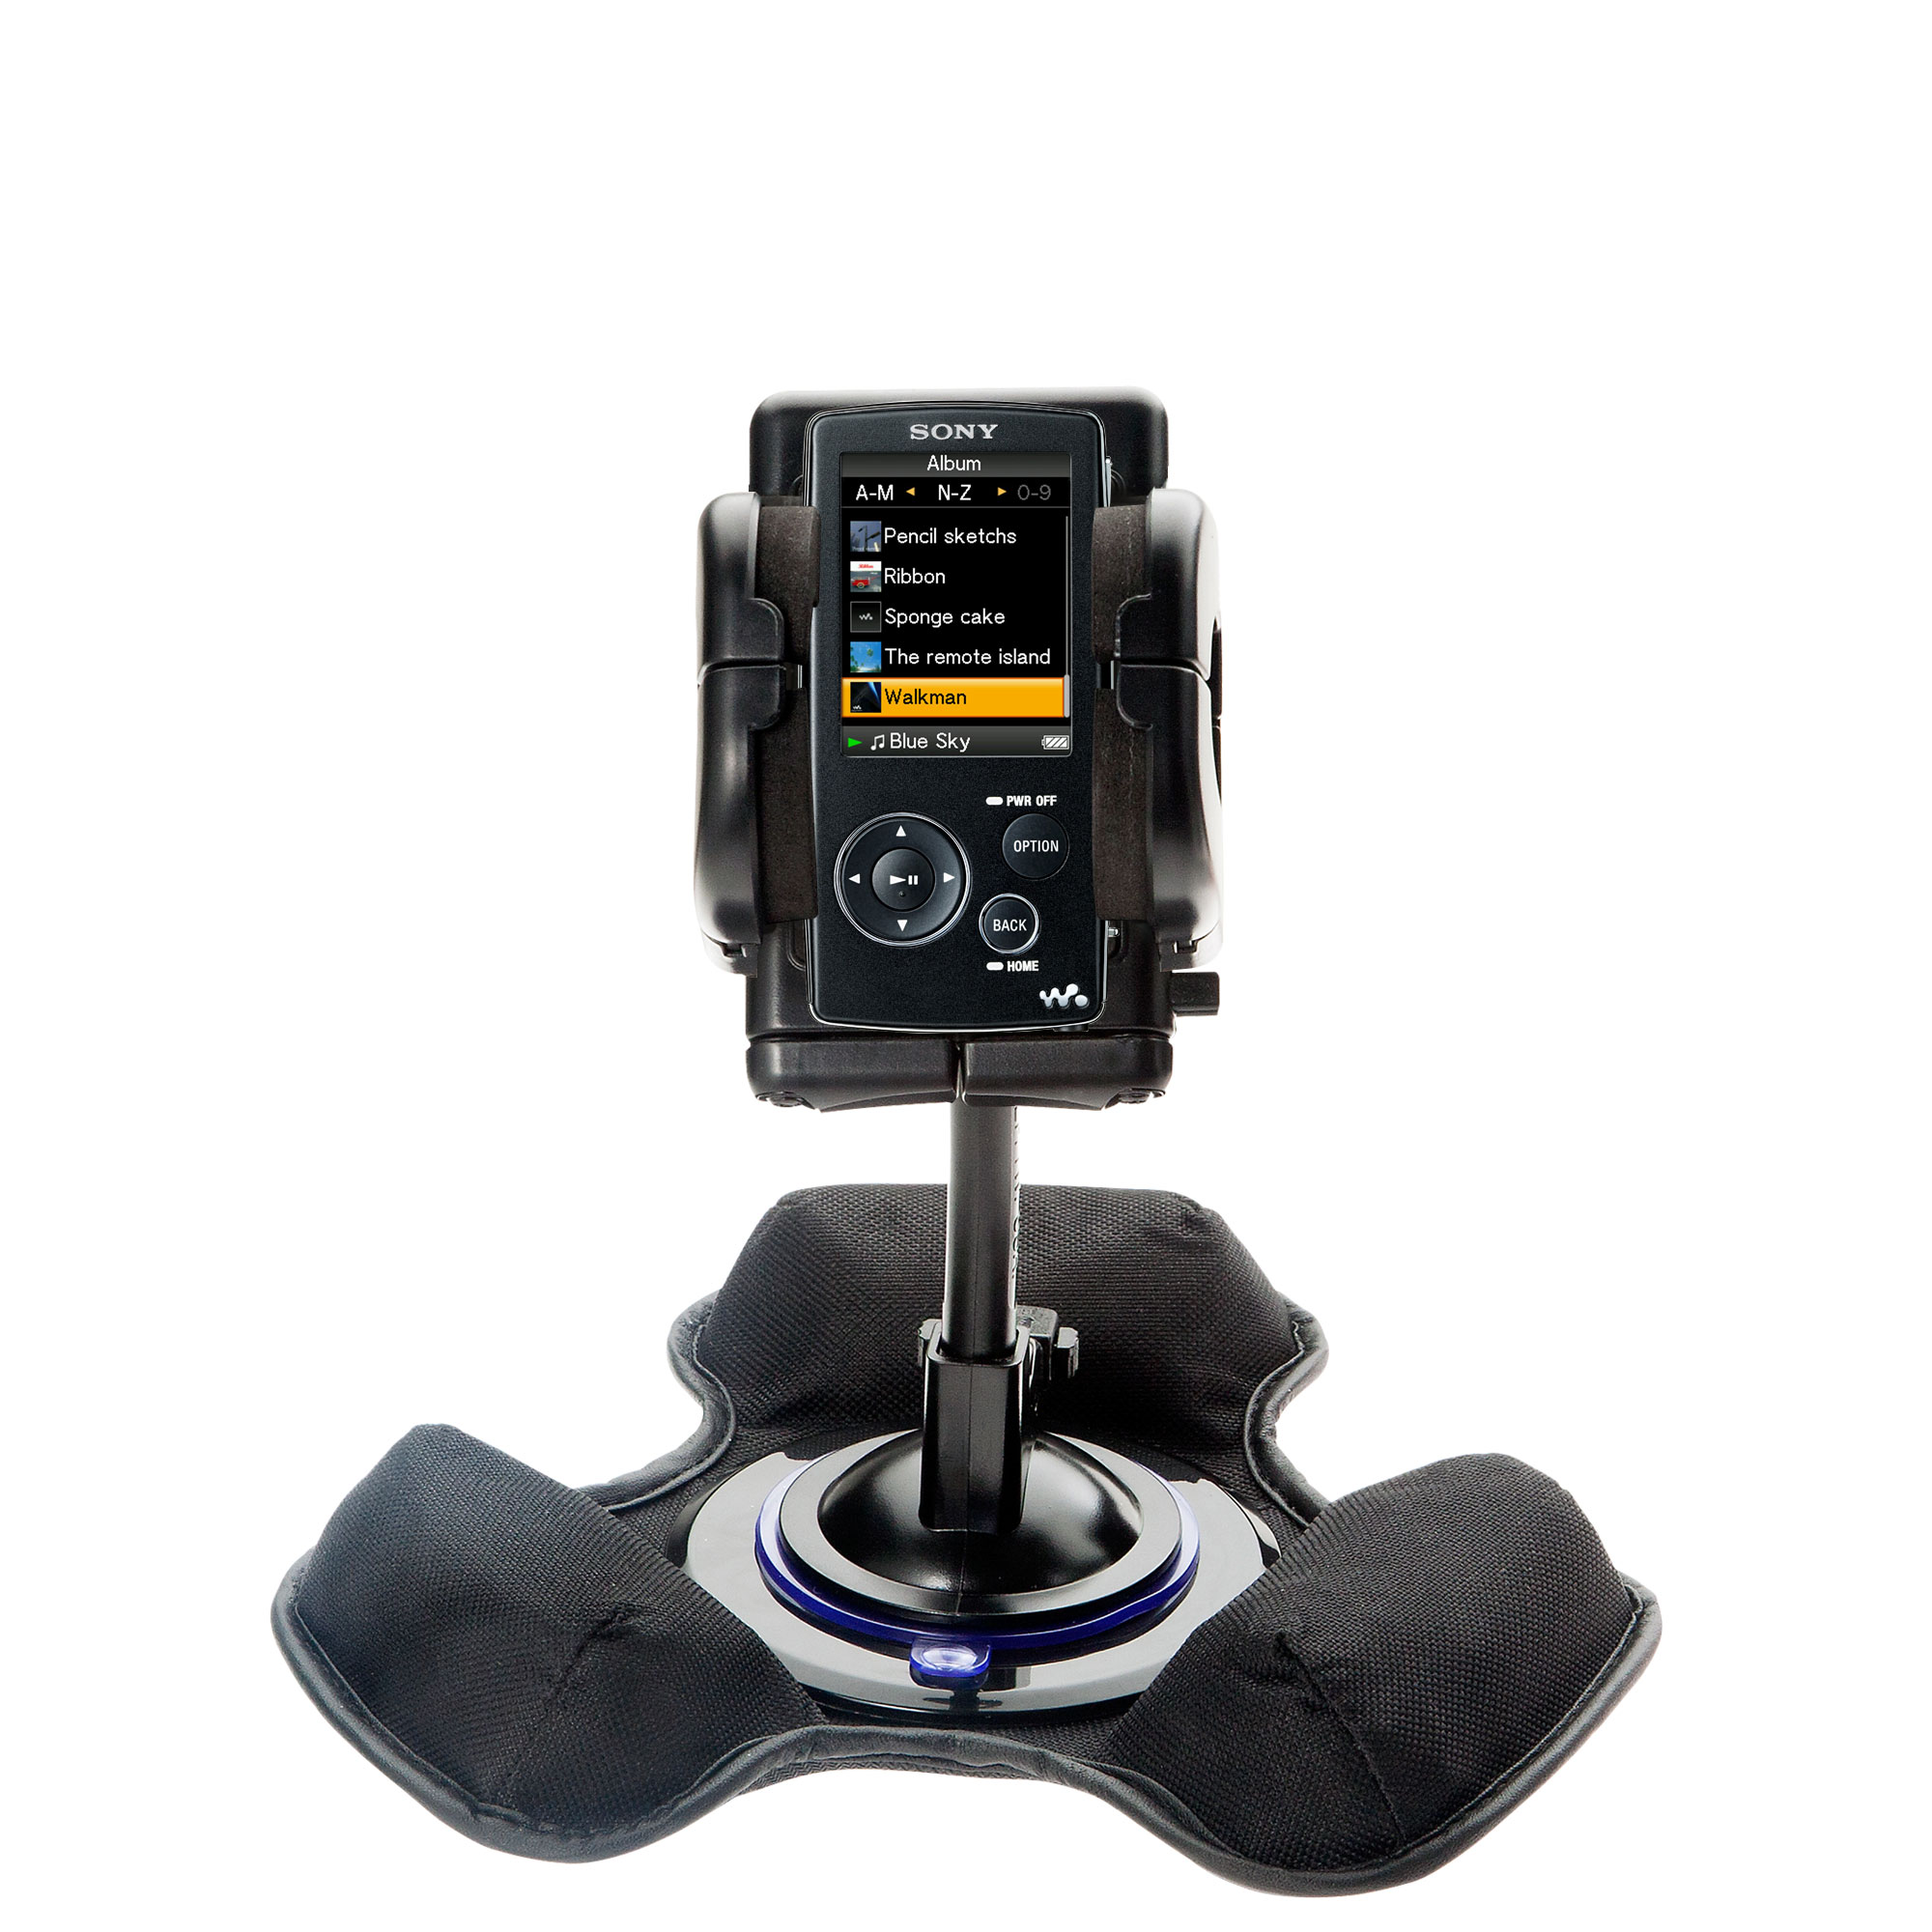 Car / Truck Vehicle Holder Mounting System for Sony Walkman NWZ-A805 Includes Unique Flexible Windshield Suction and Universal Dashboard Mount Options